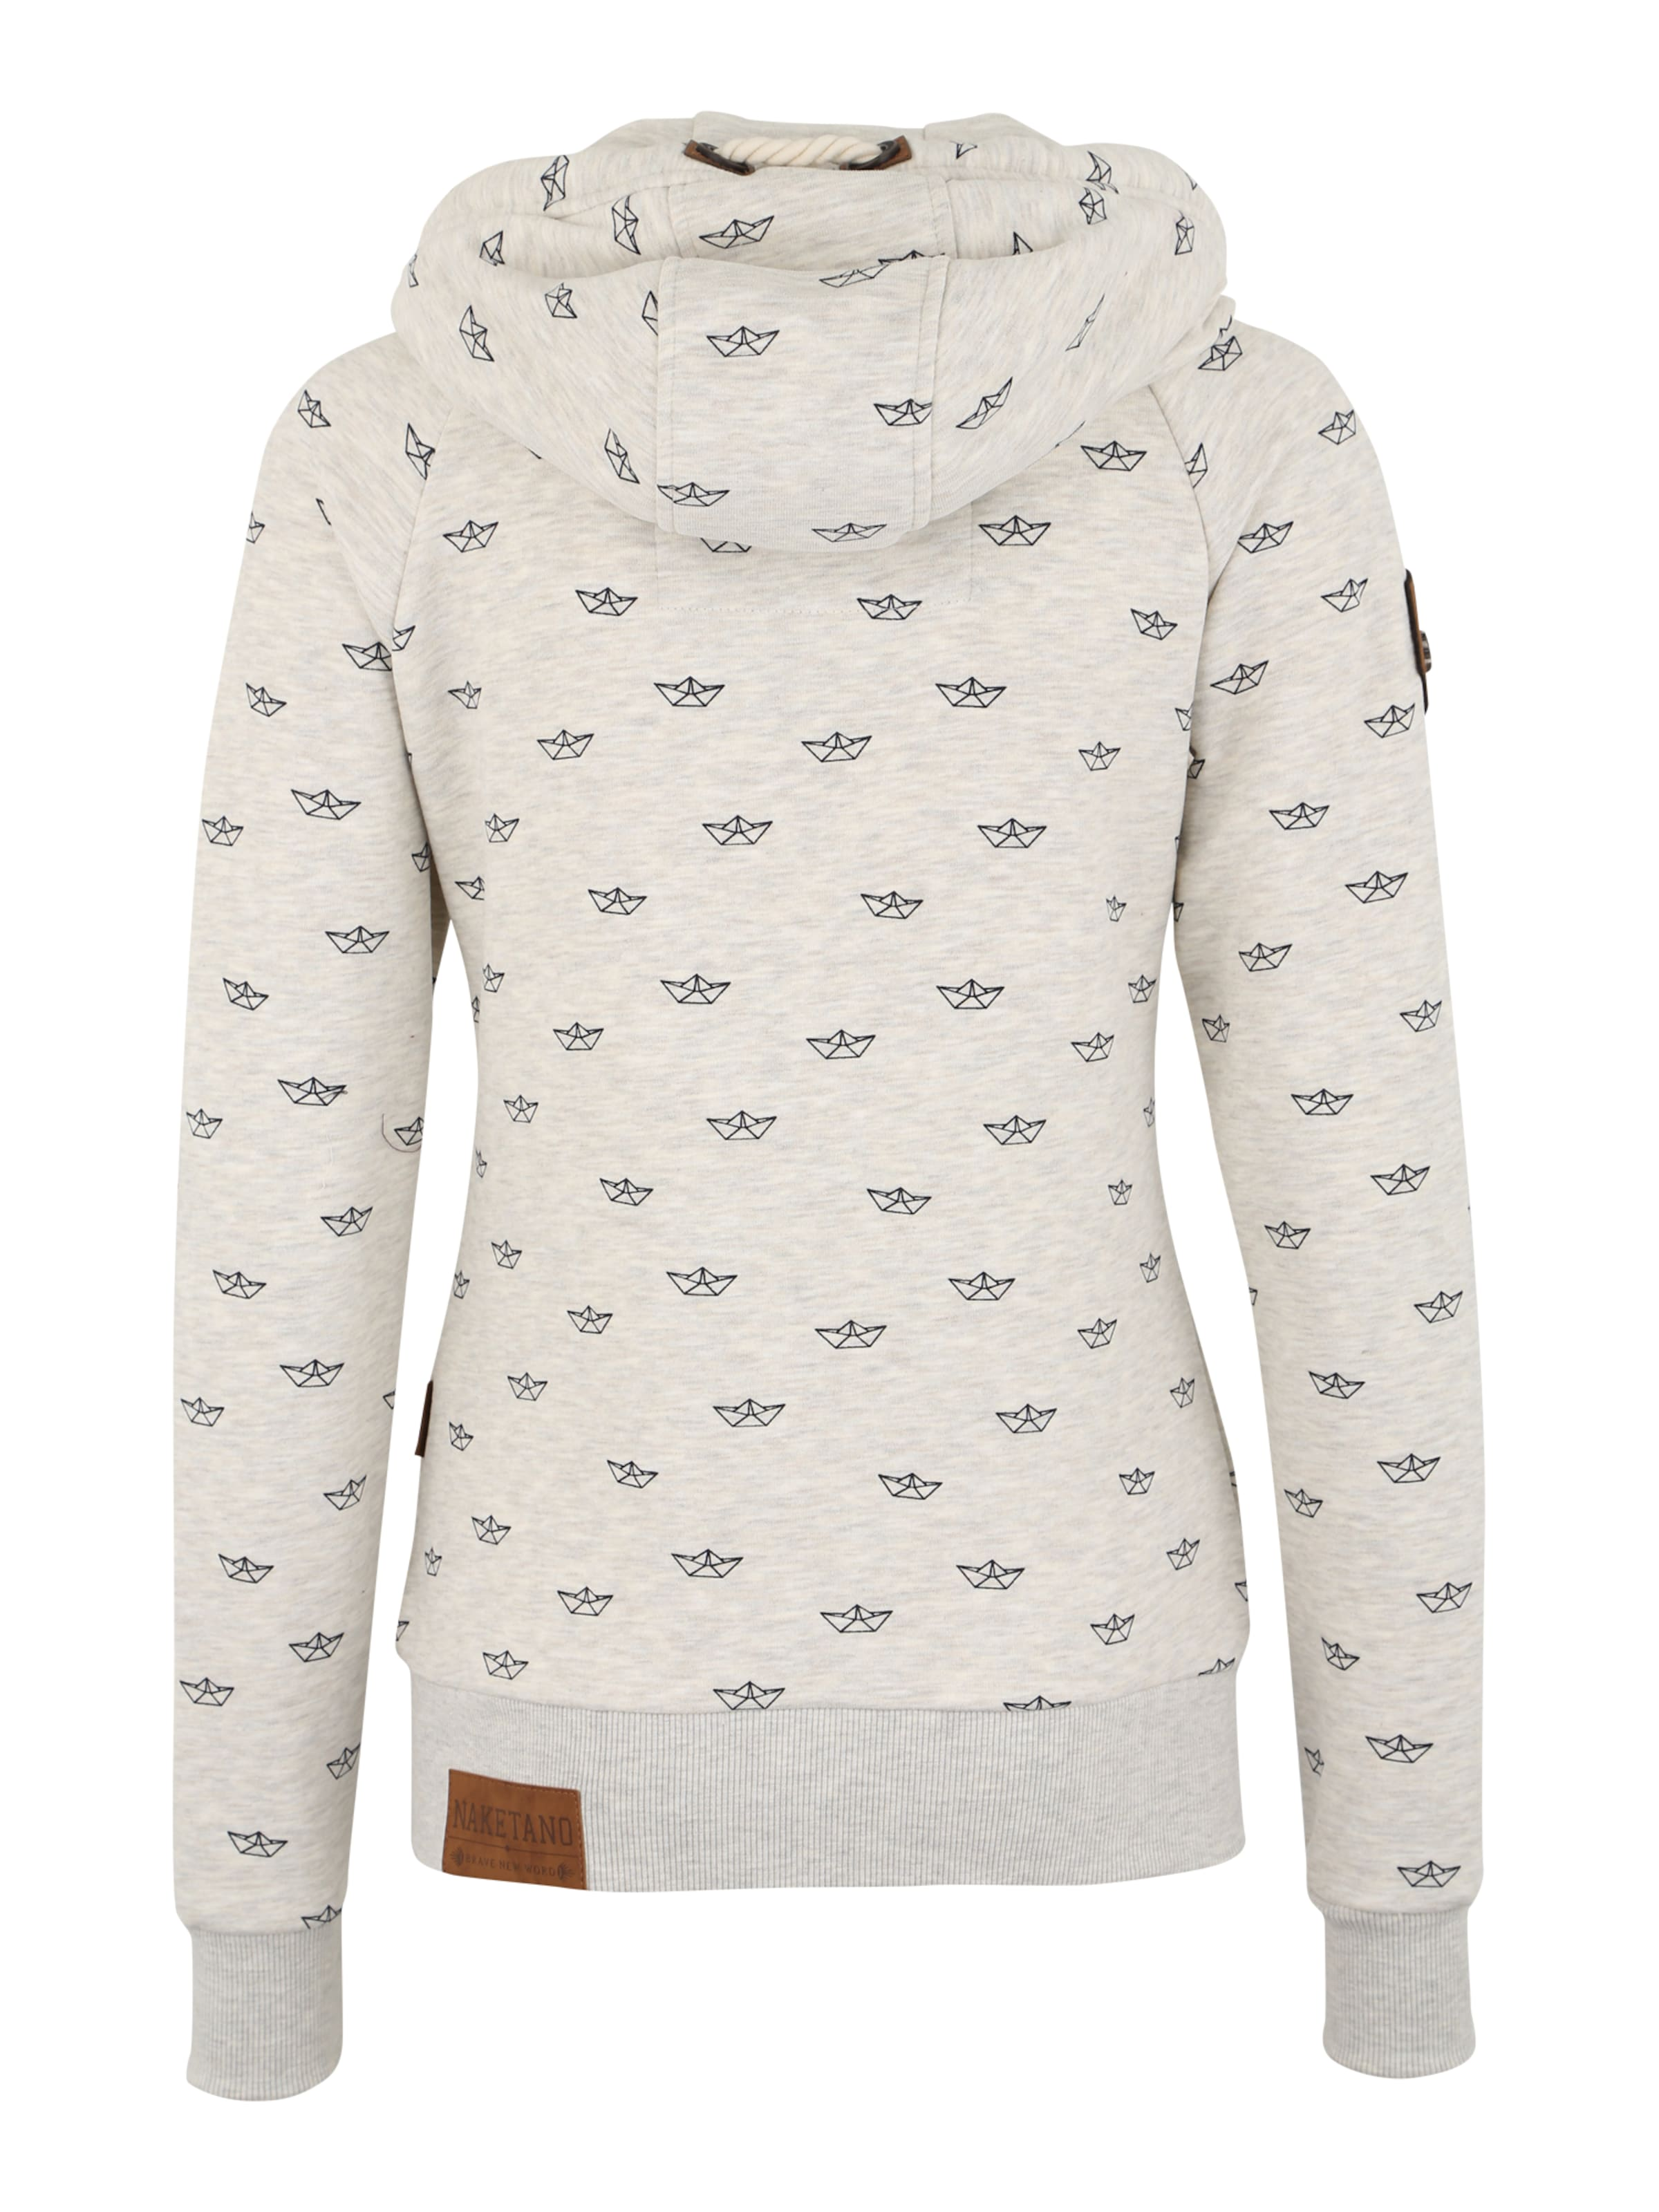 I Couleurs De En Gris ClairMélange 'because Got Naketano Veste High' Survêtement HE2ID9